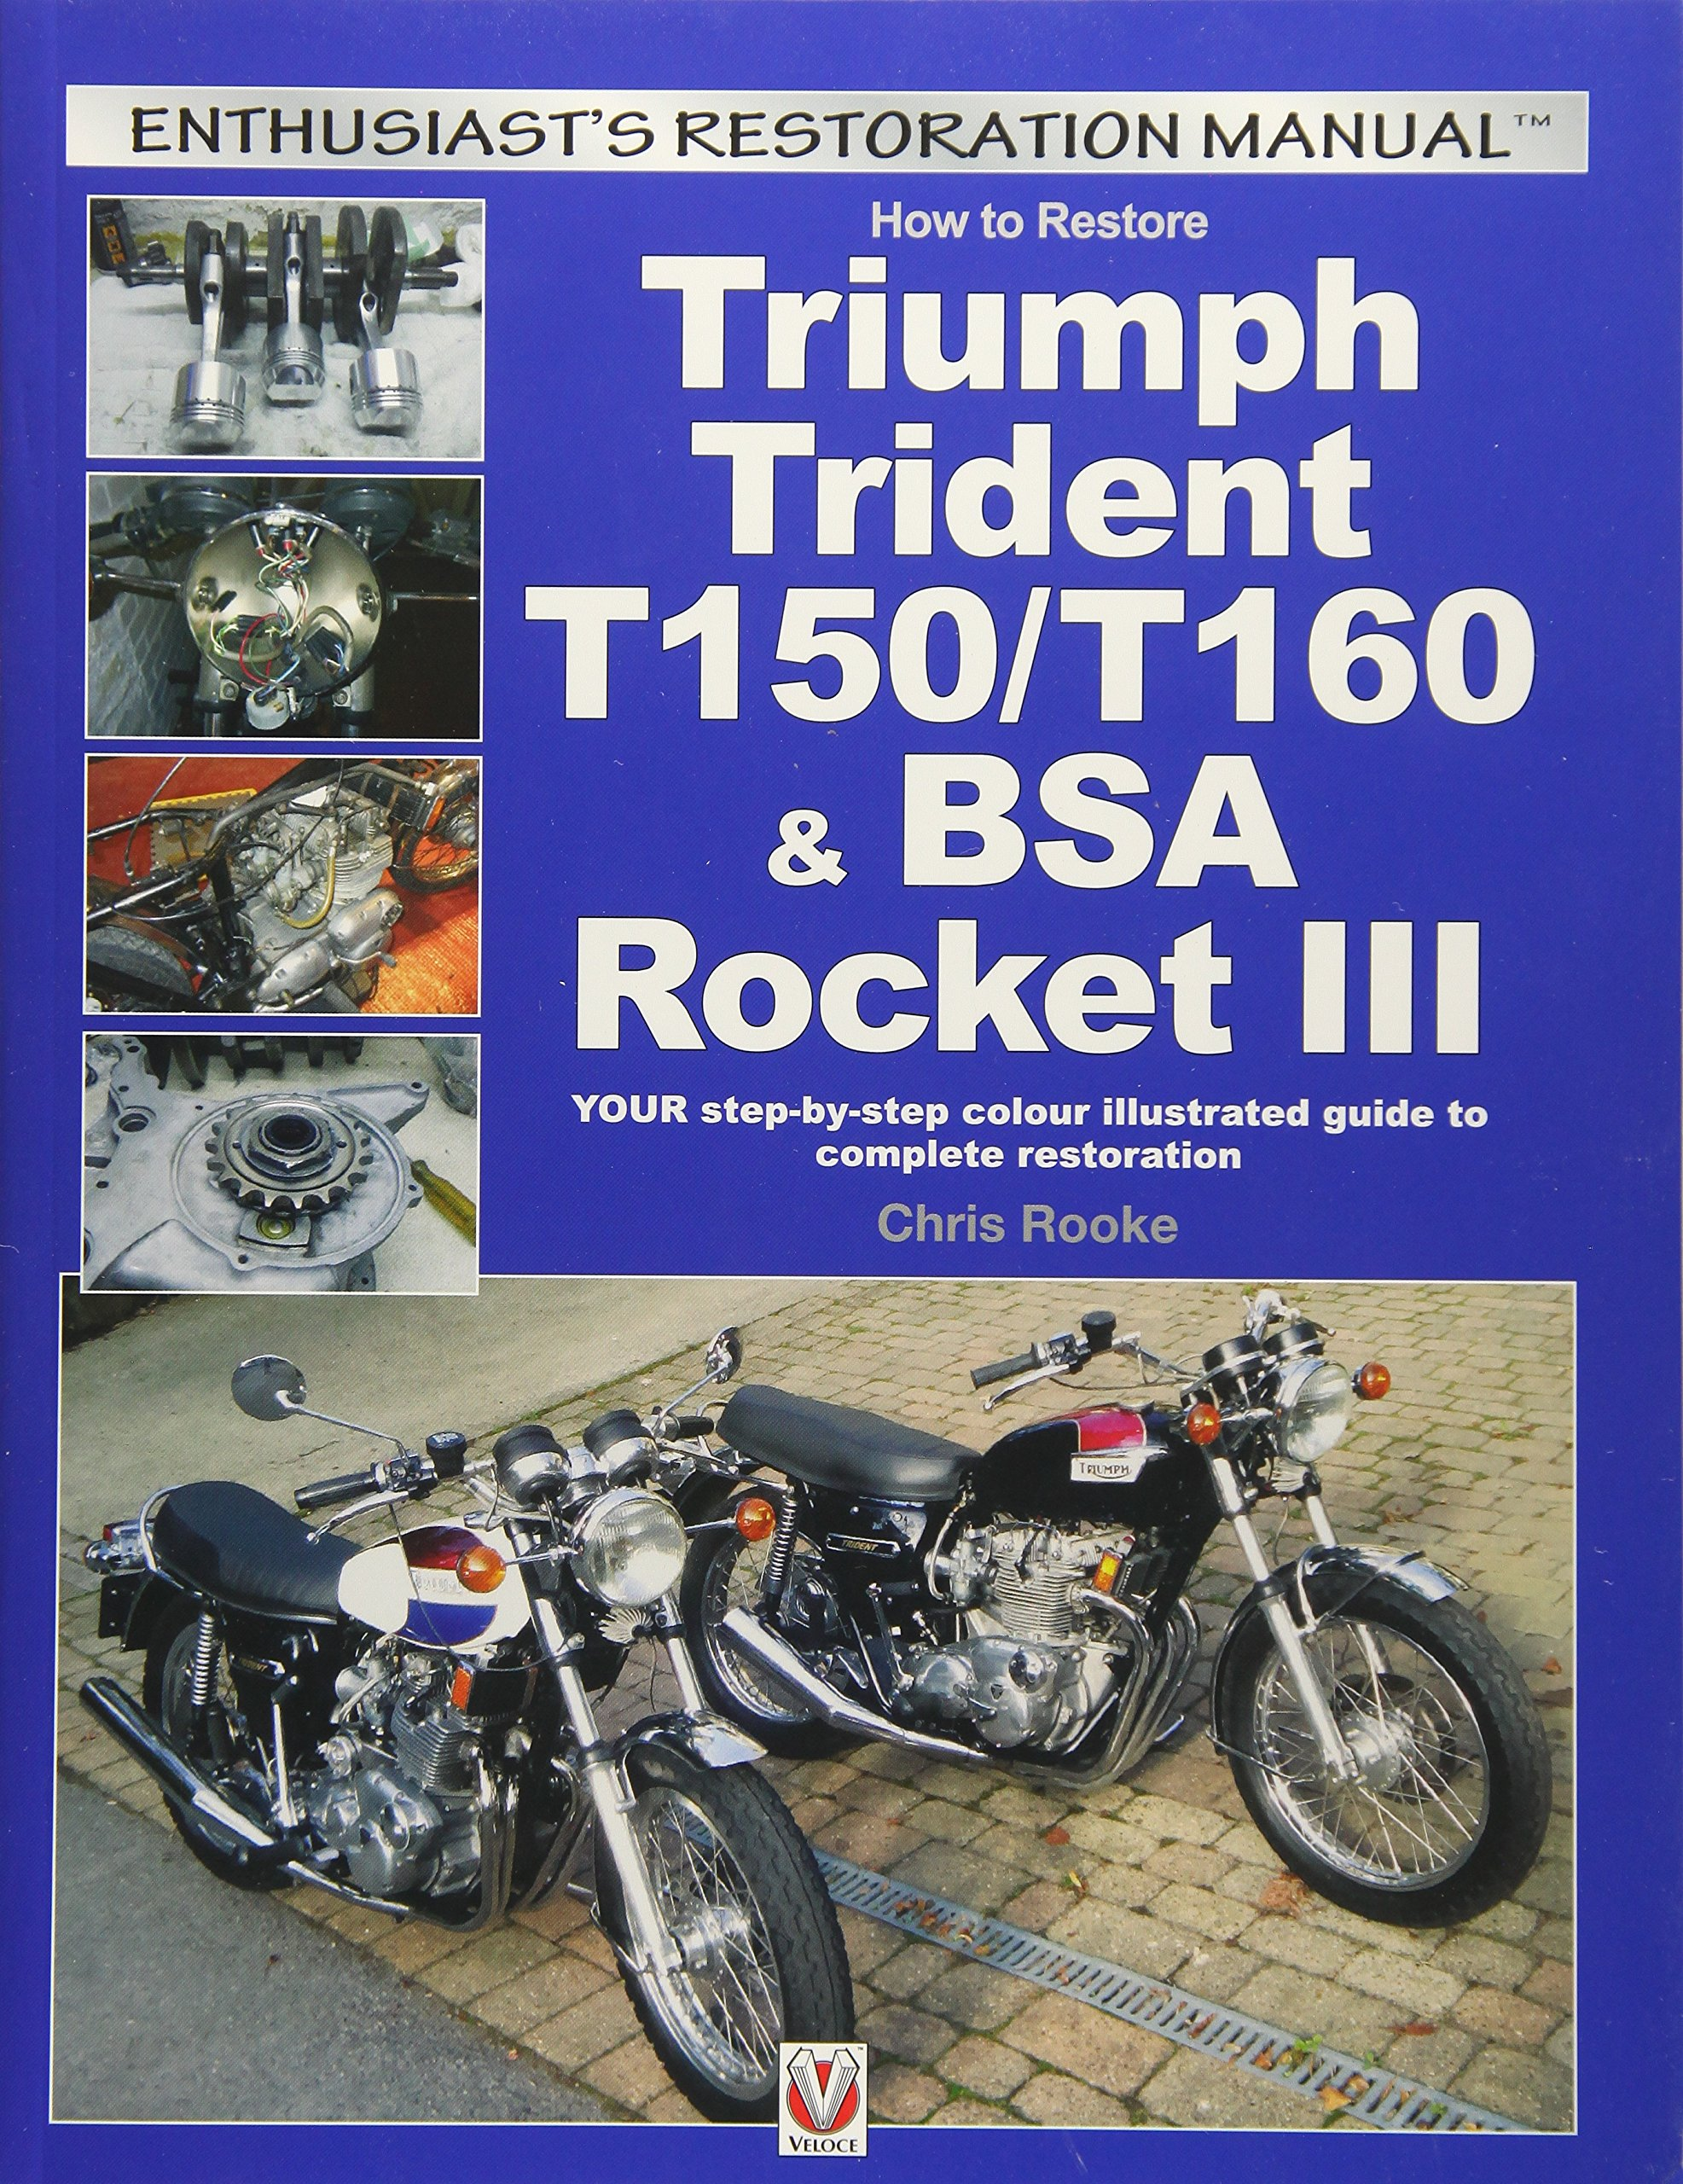 How to Restore Triumph Trident T150/T160 & BSA Rocket III: YOUR  step-by-step colour illustrated guide to complete restoration (Enthusiast's  Restoration ...